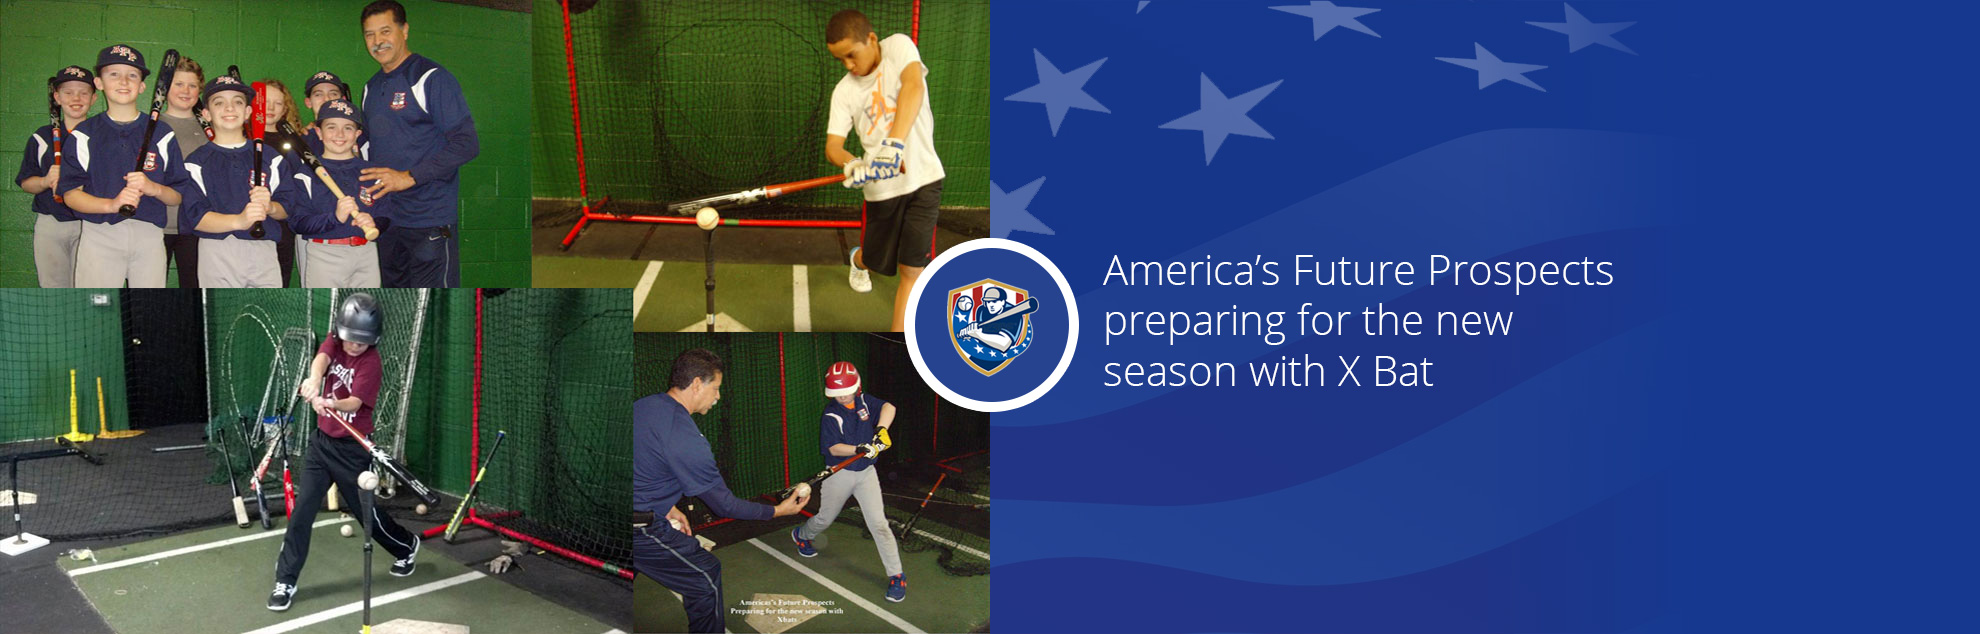 Americas's Future Prospects preparing for the new season with Xbats